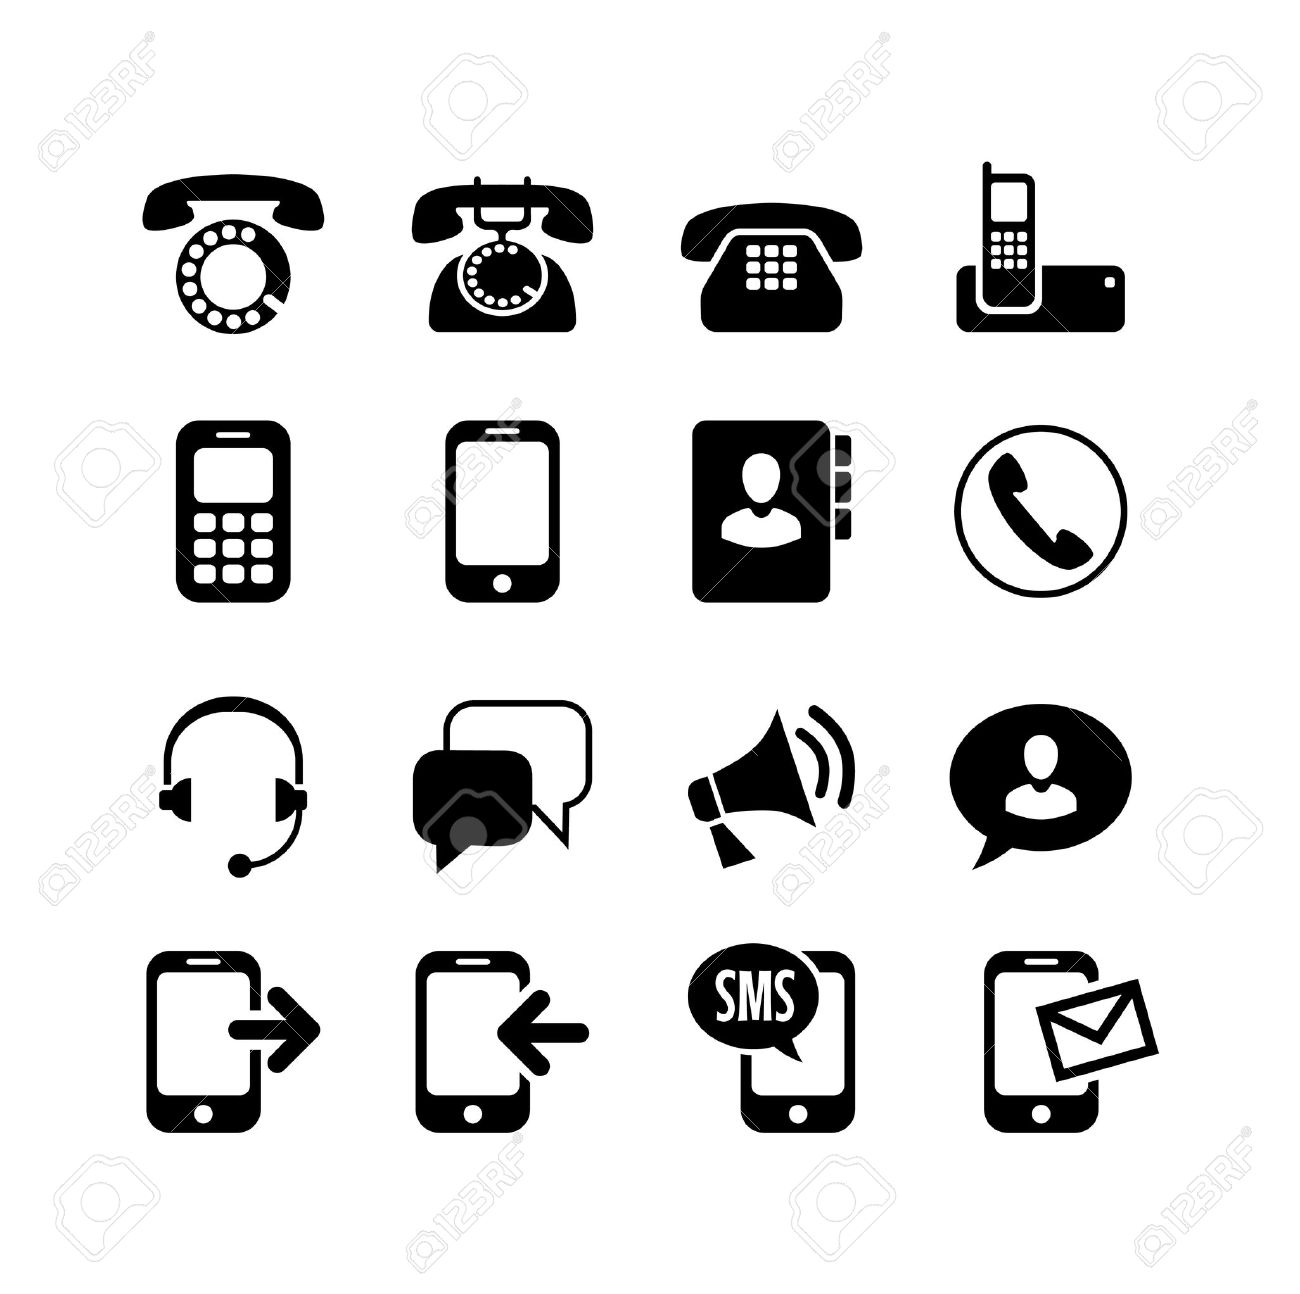 3,026 Telephone Fax Stock Vector Illustration And Royalty Free ...